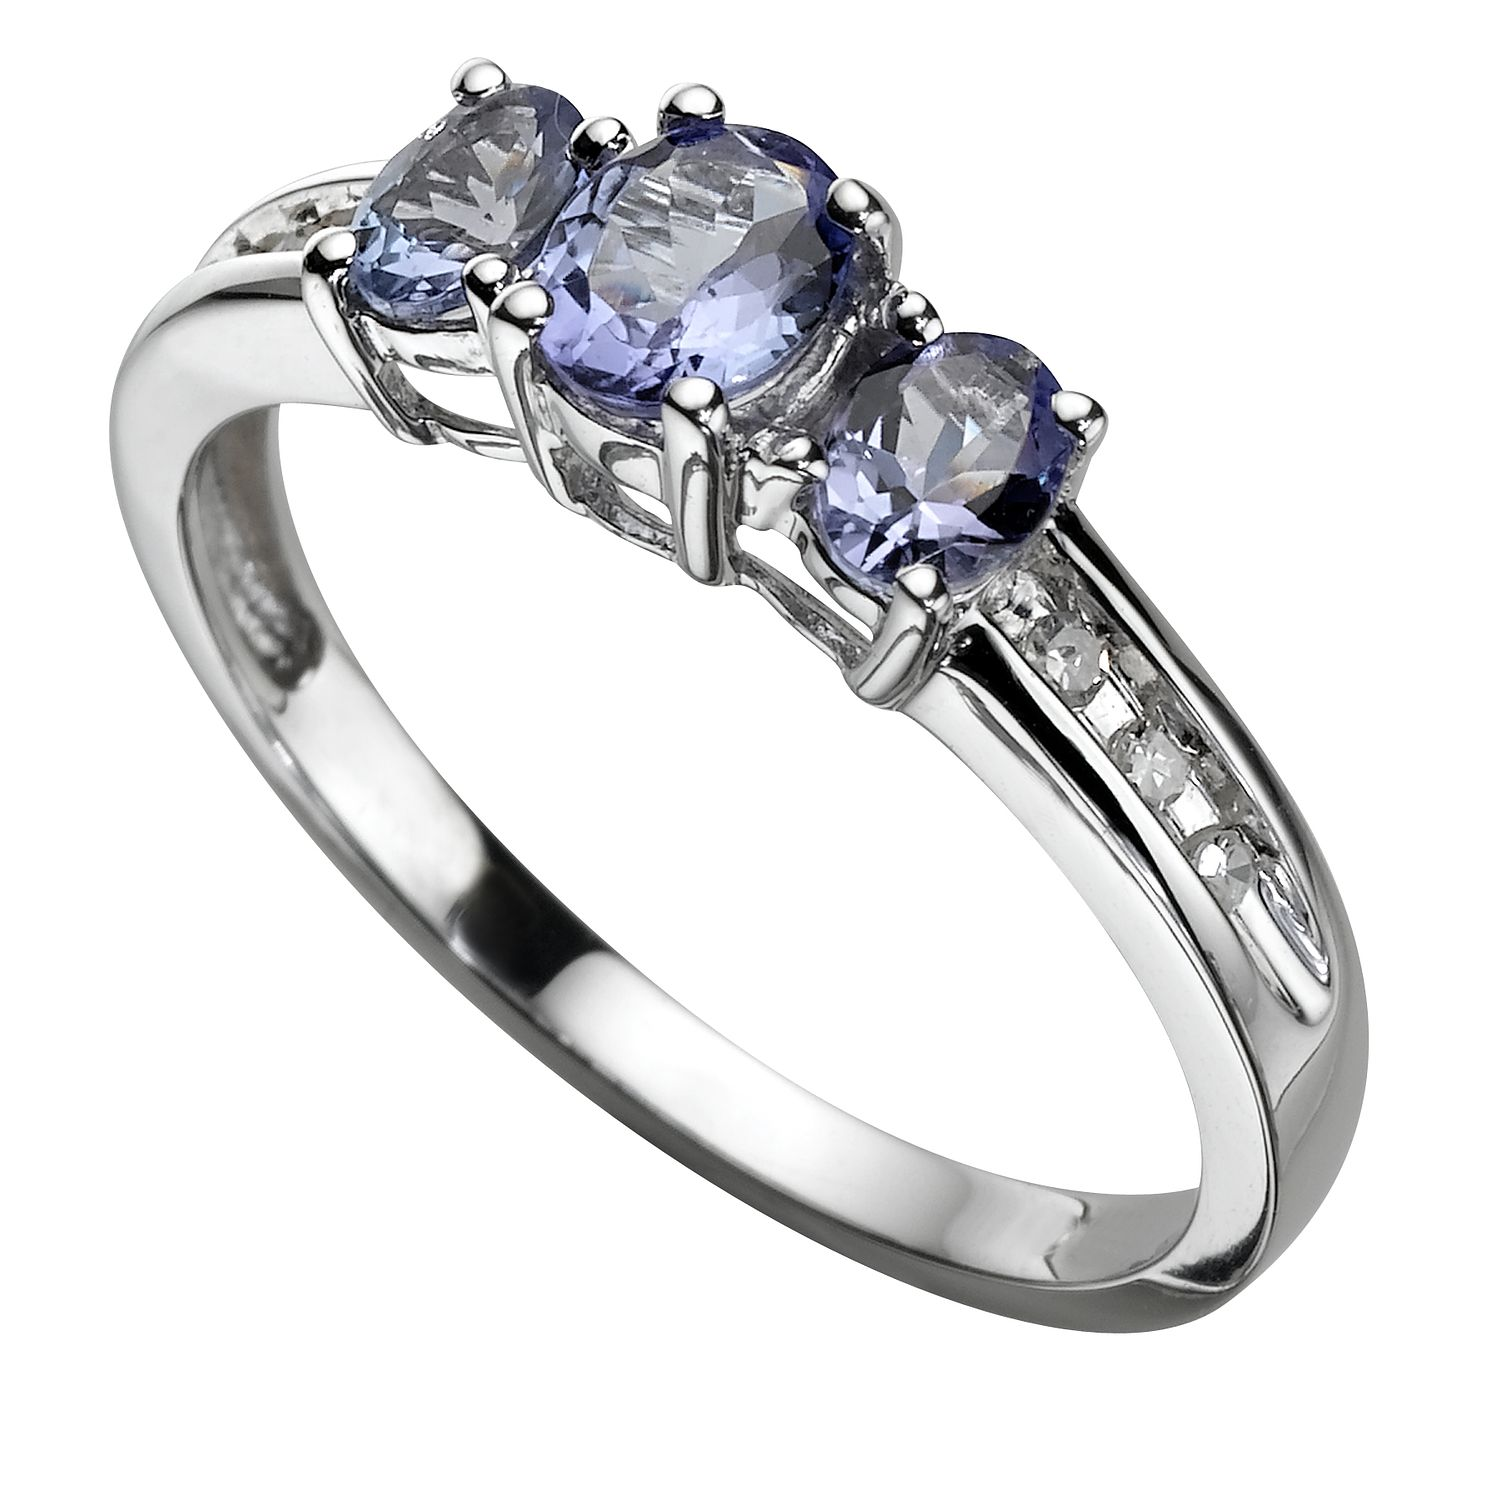 greenleaf collections engagement diamonds ring tanzanite products rings diamond